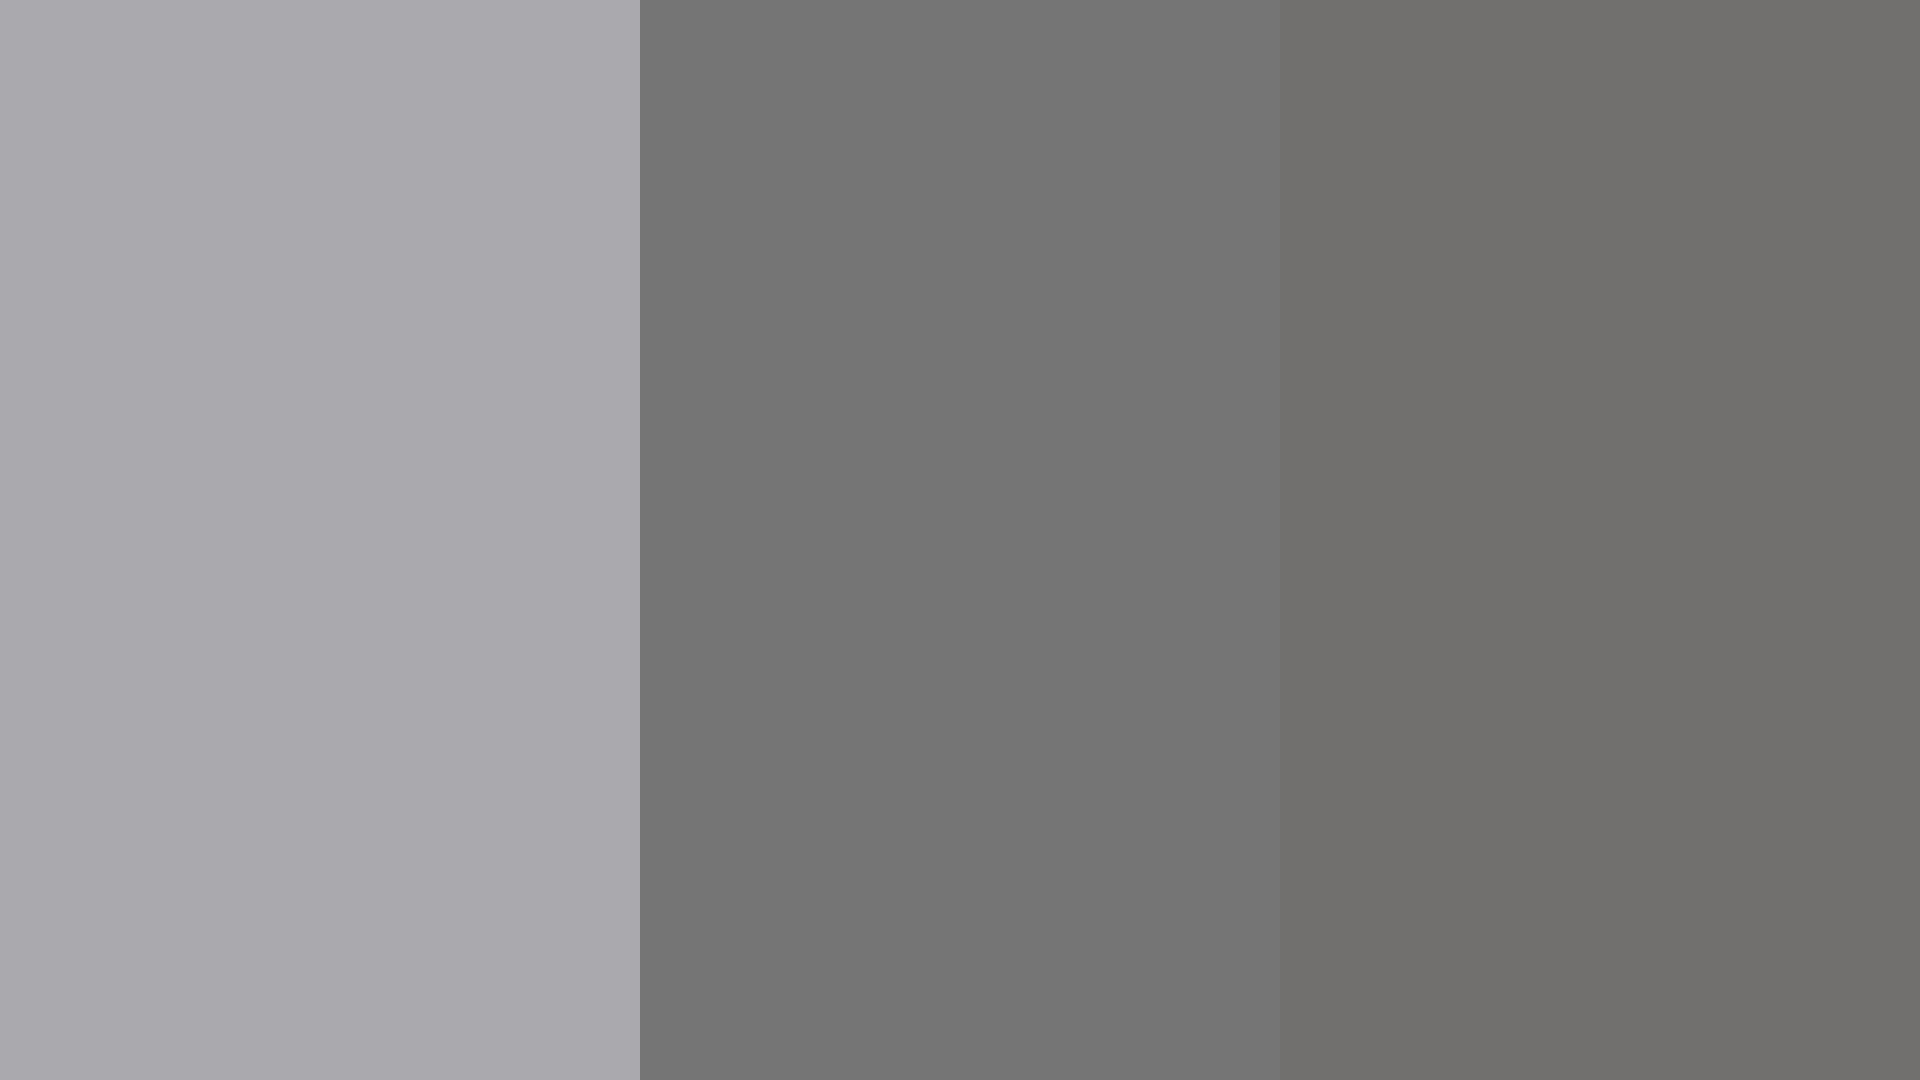 Metallic Silky Silver Color Palette